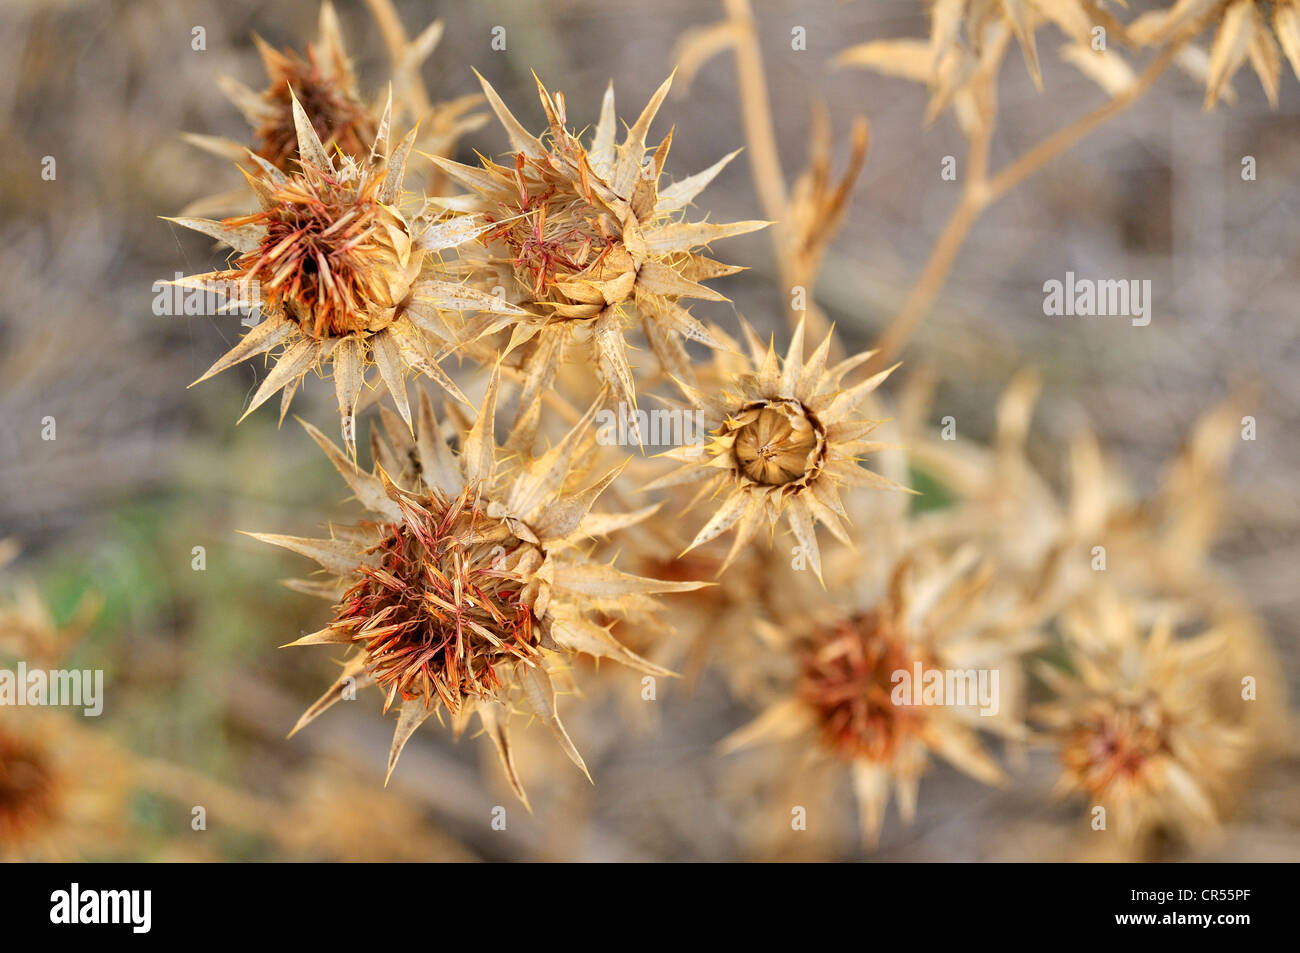 Safflower (Carthamus tinctorius), grown large-scale by the major landowners at the expense of the Chaco vegetation - Stock Image